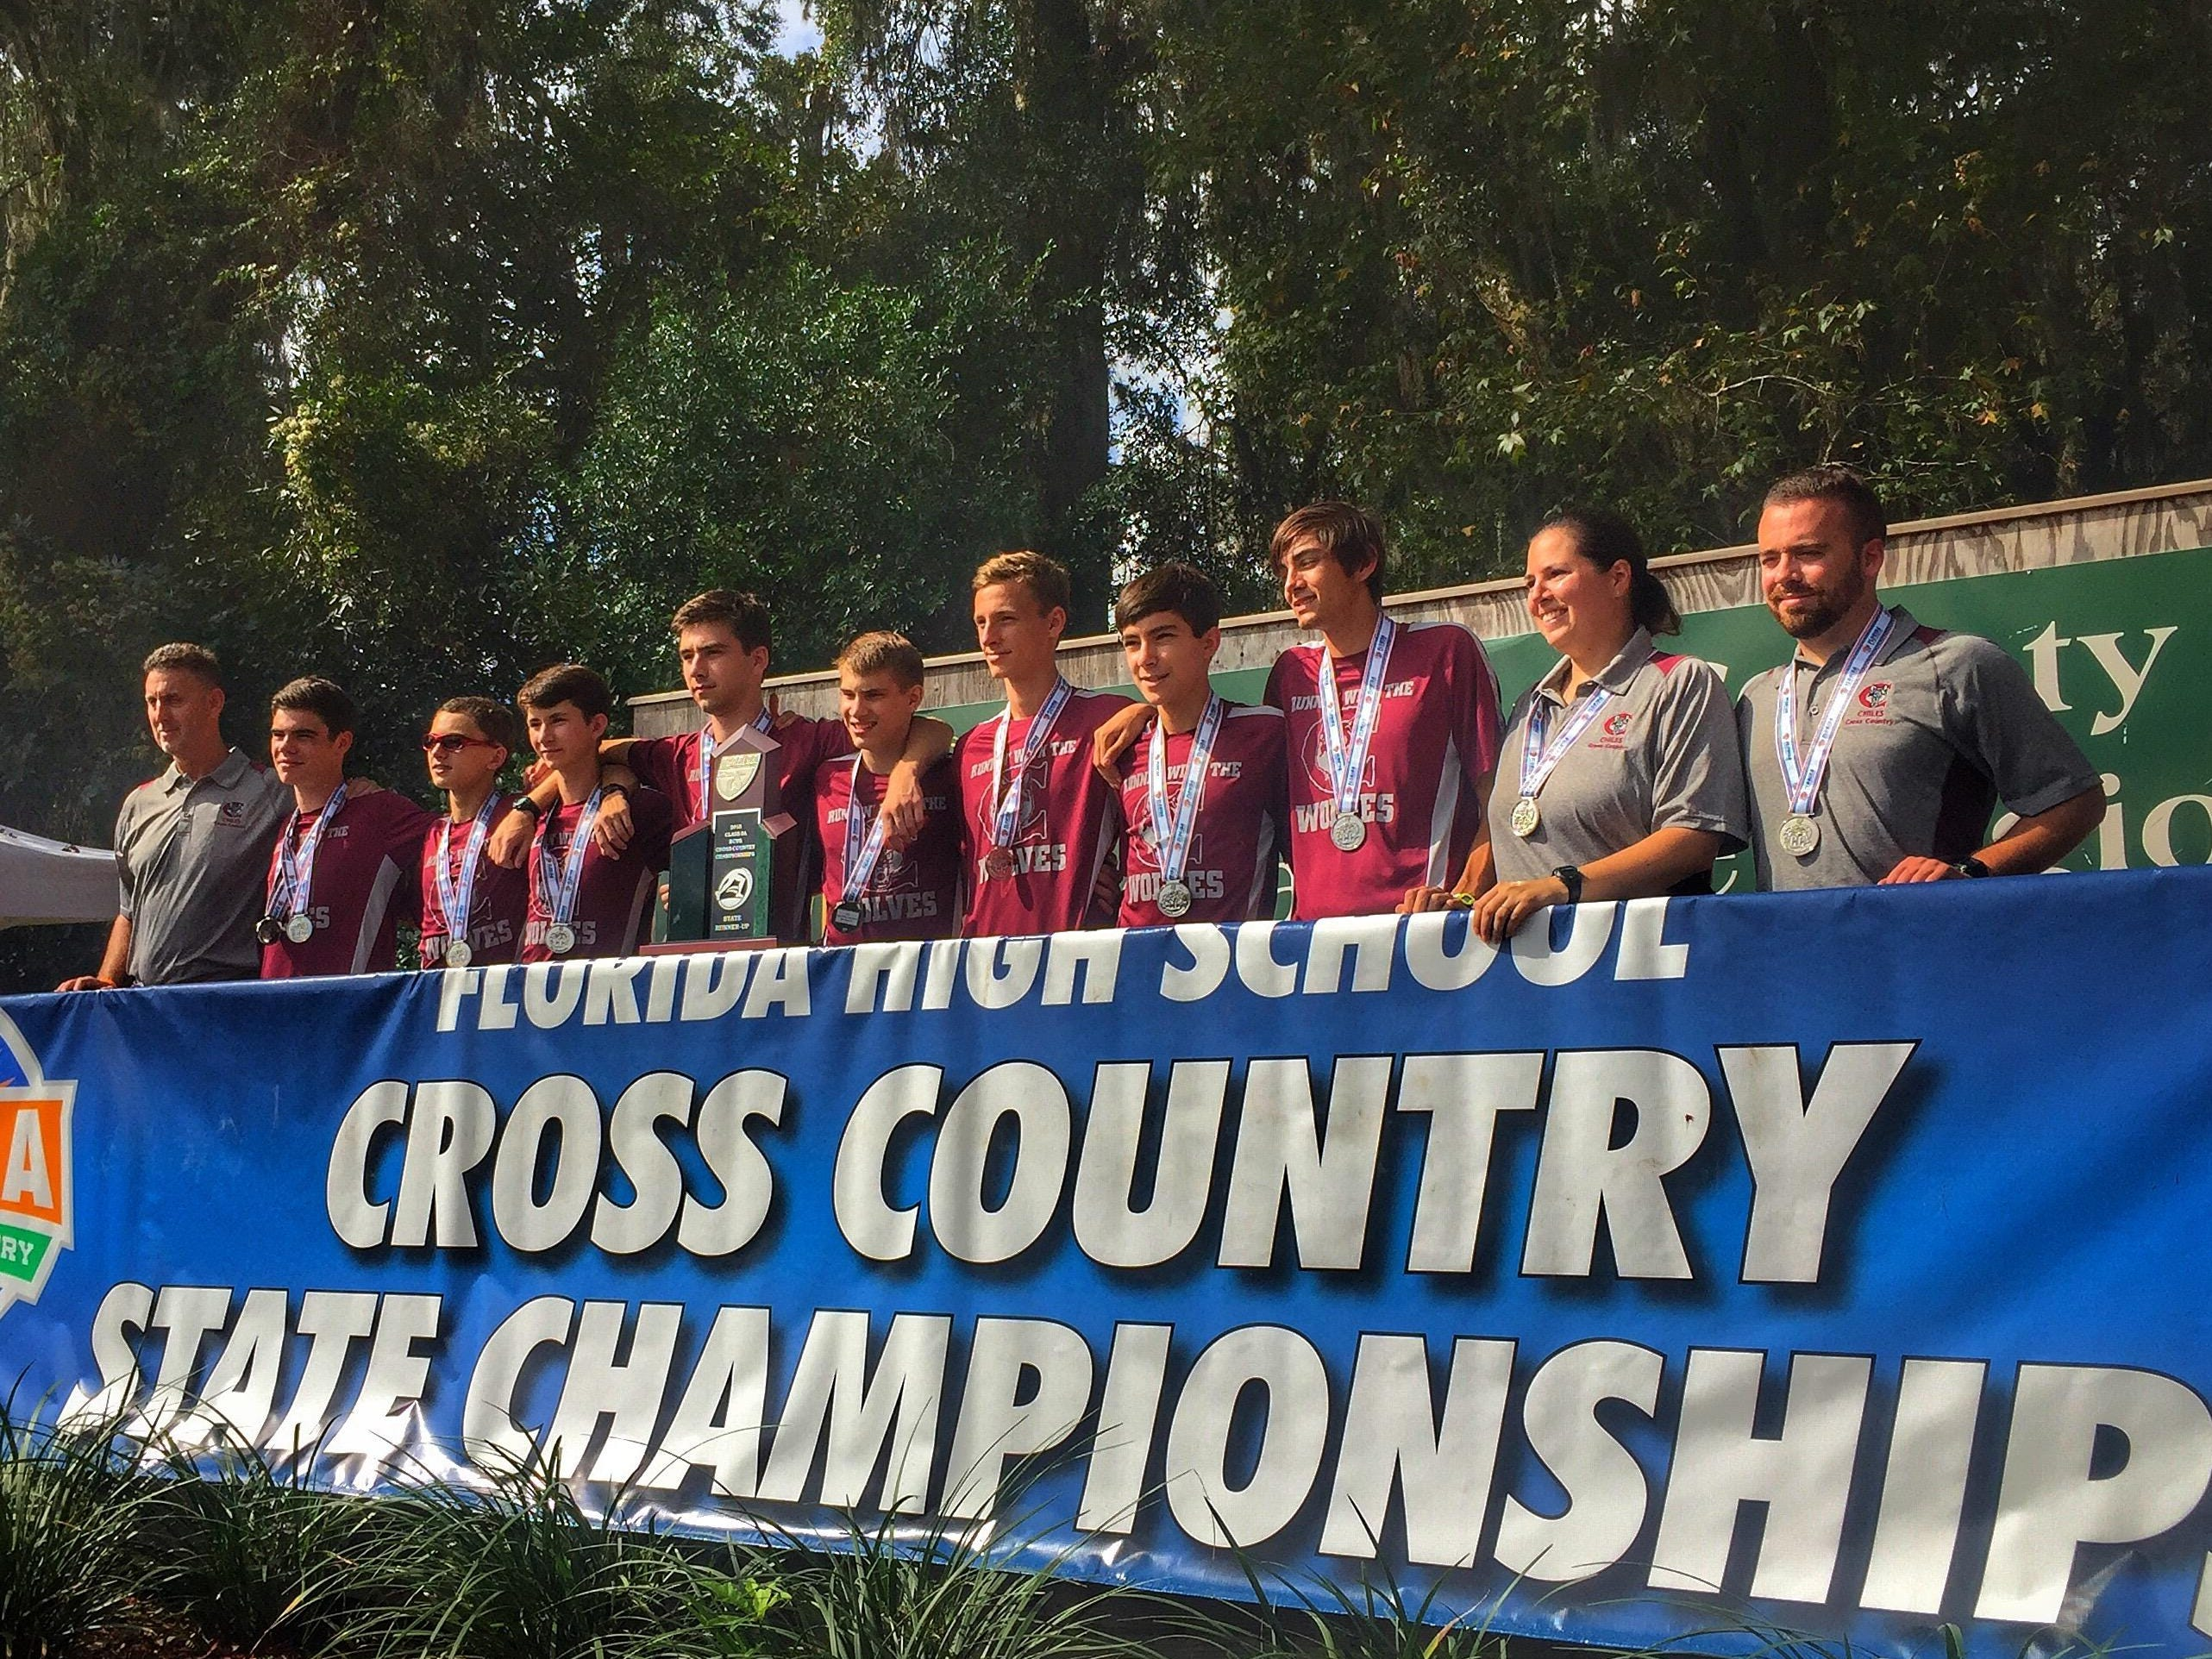 The Chiles boys cross country team finished as the Class 3A runner-up during Saturday's FHSAA state cross country meet at Apalachee Regional Park.